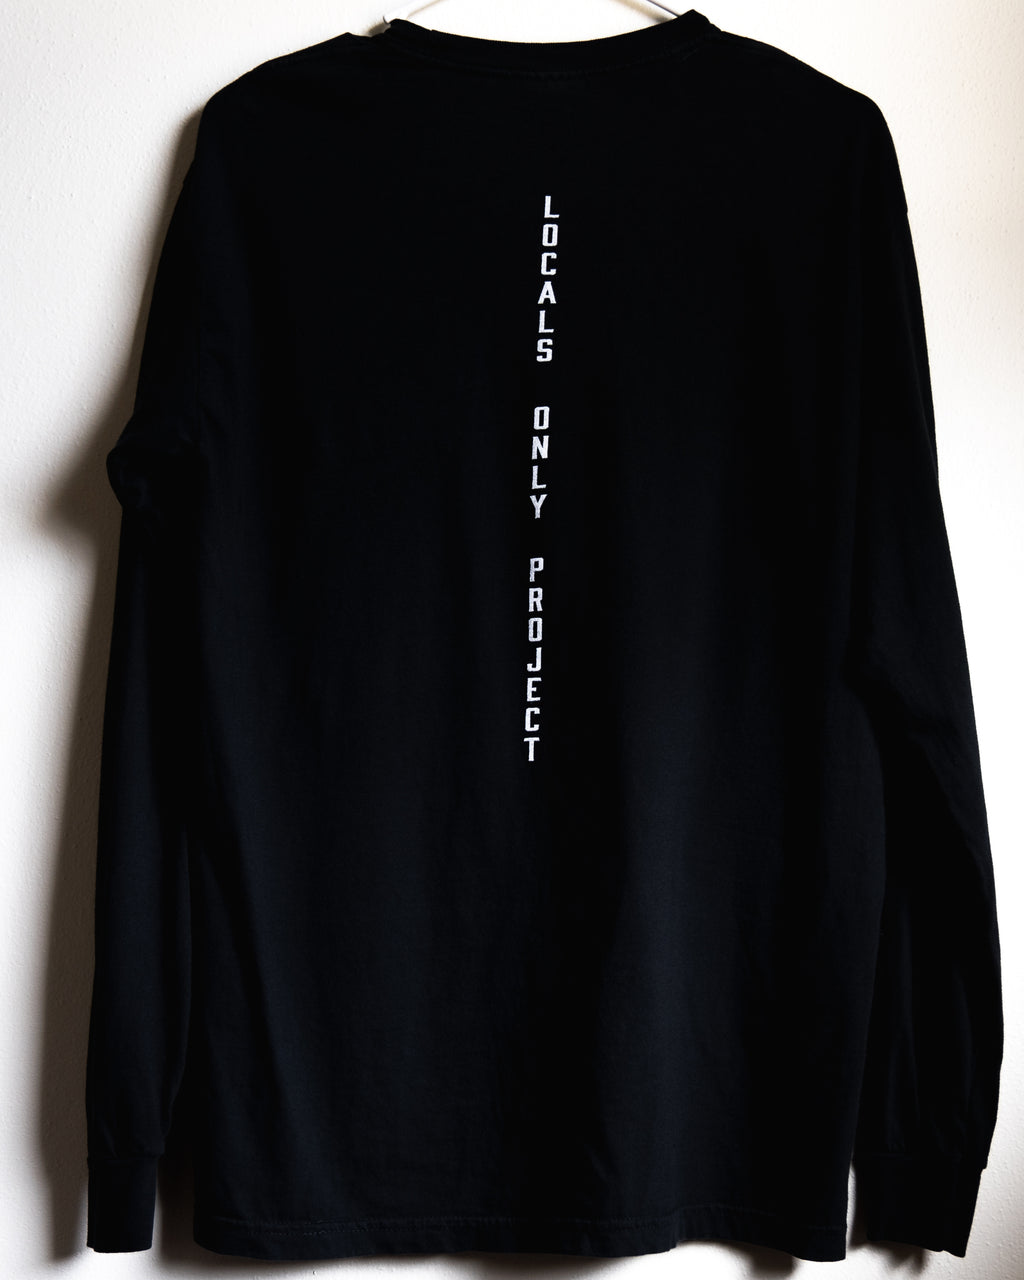 LOCAL Longsleeve - Black